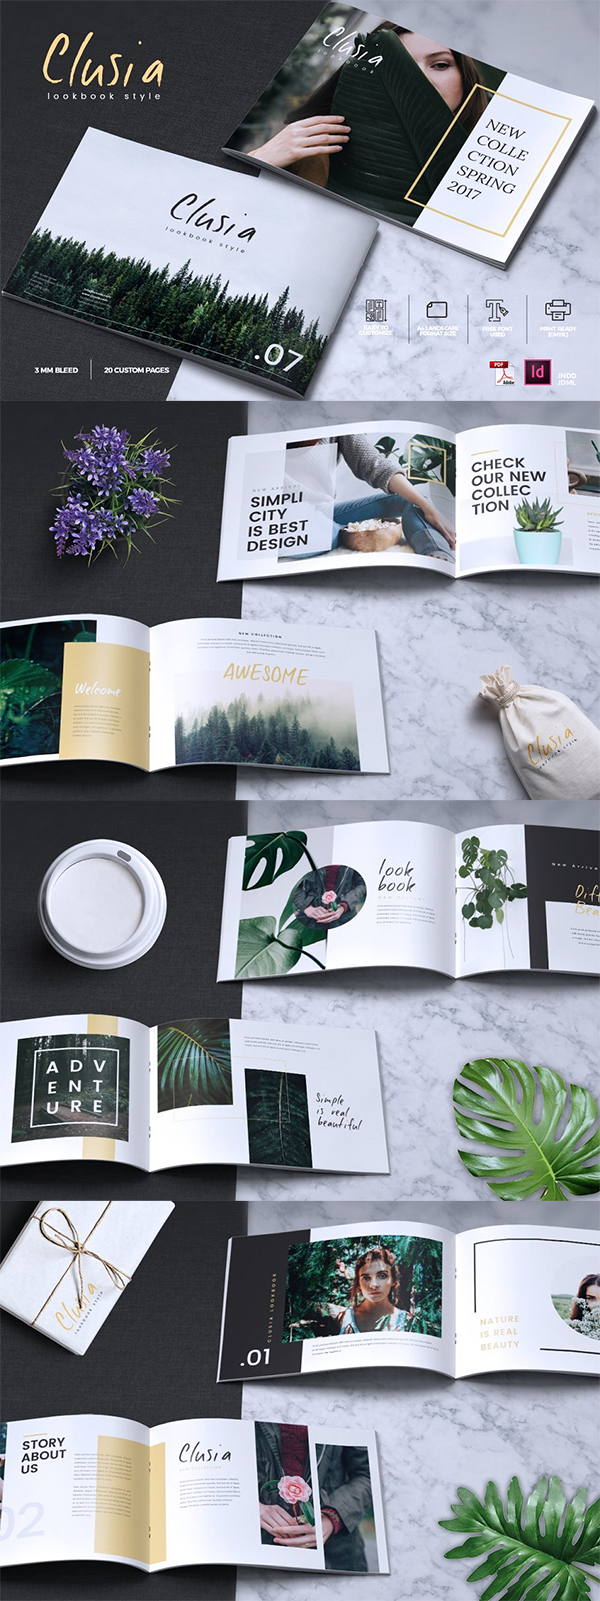 CLUSIA - Lookbook Brochure Catalogue